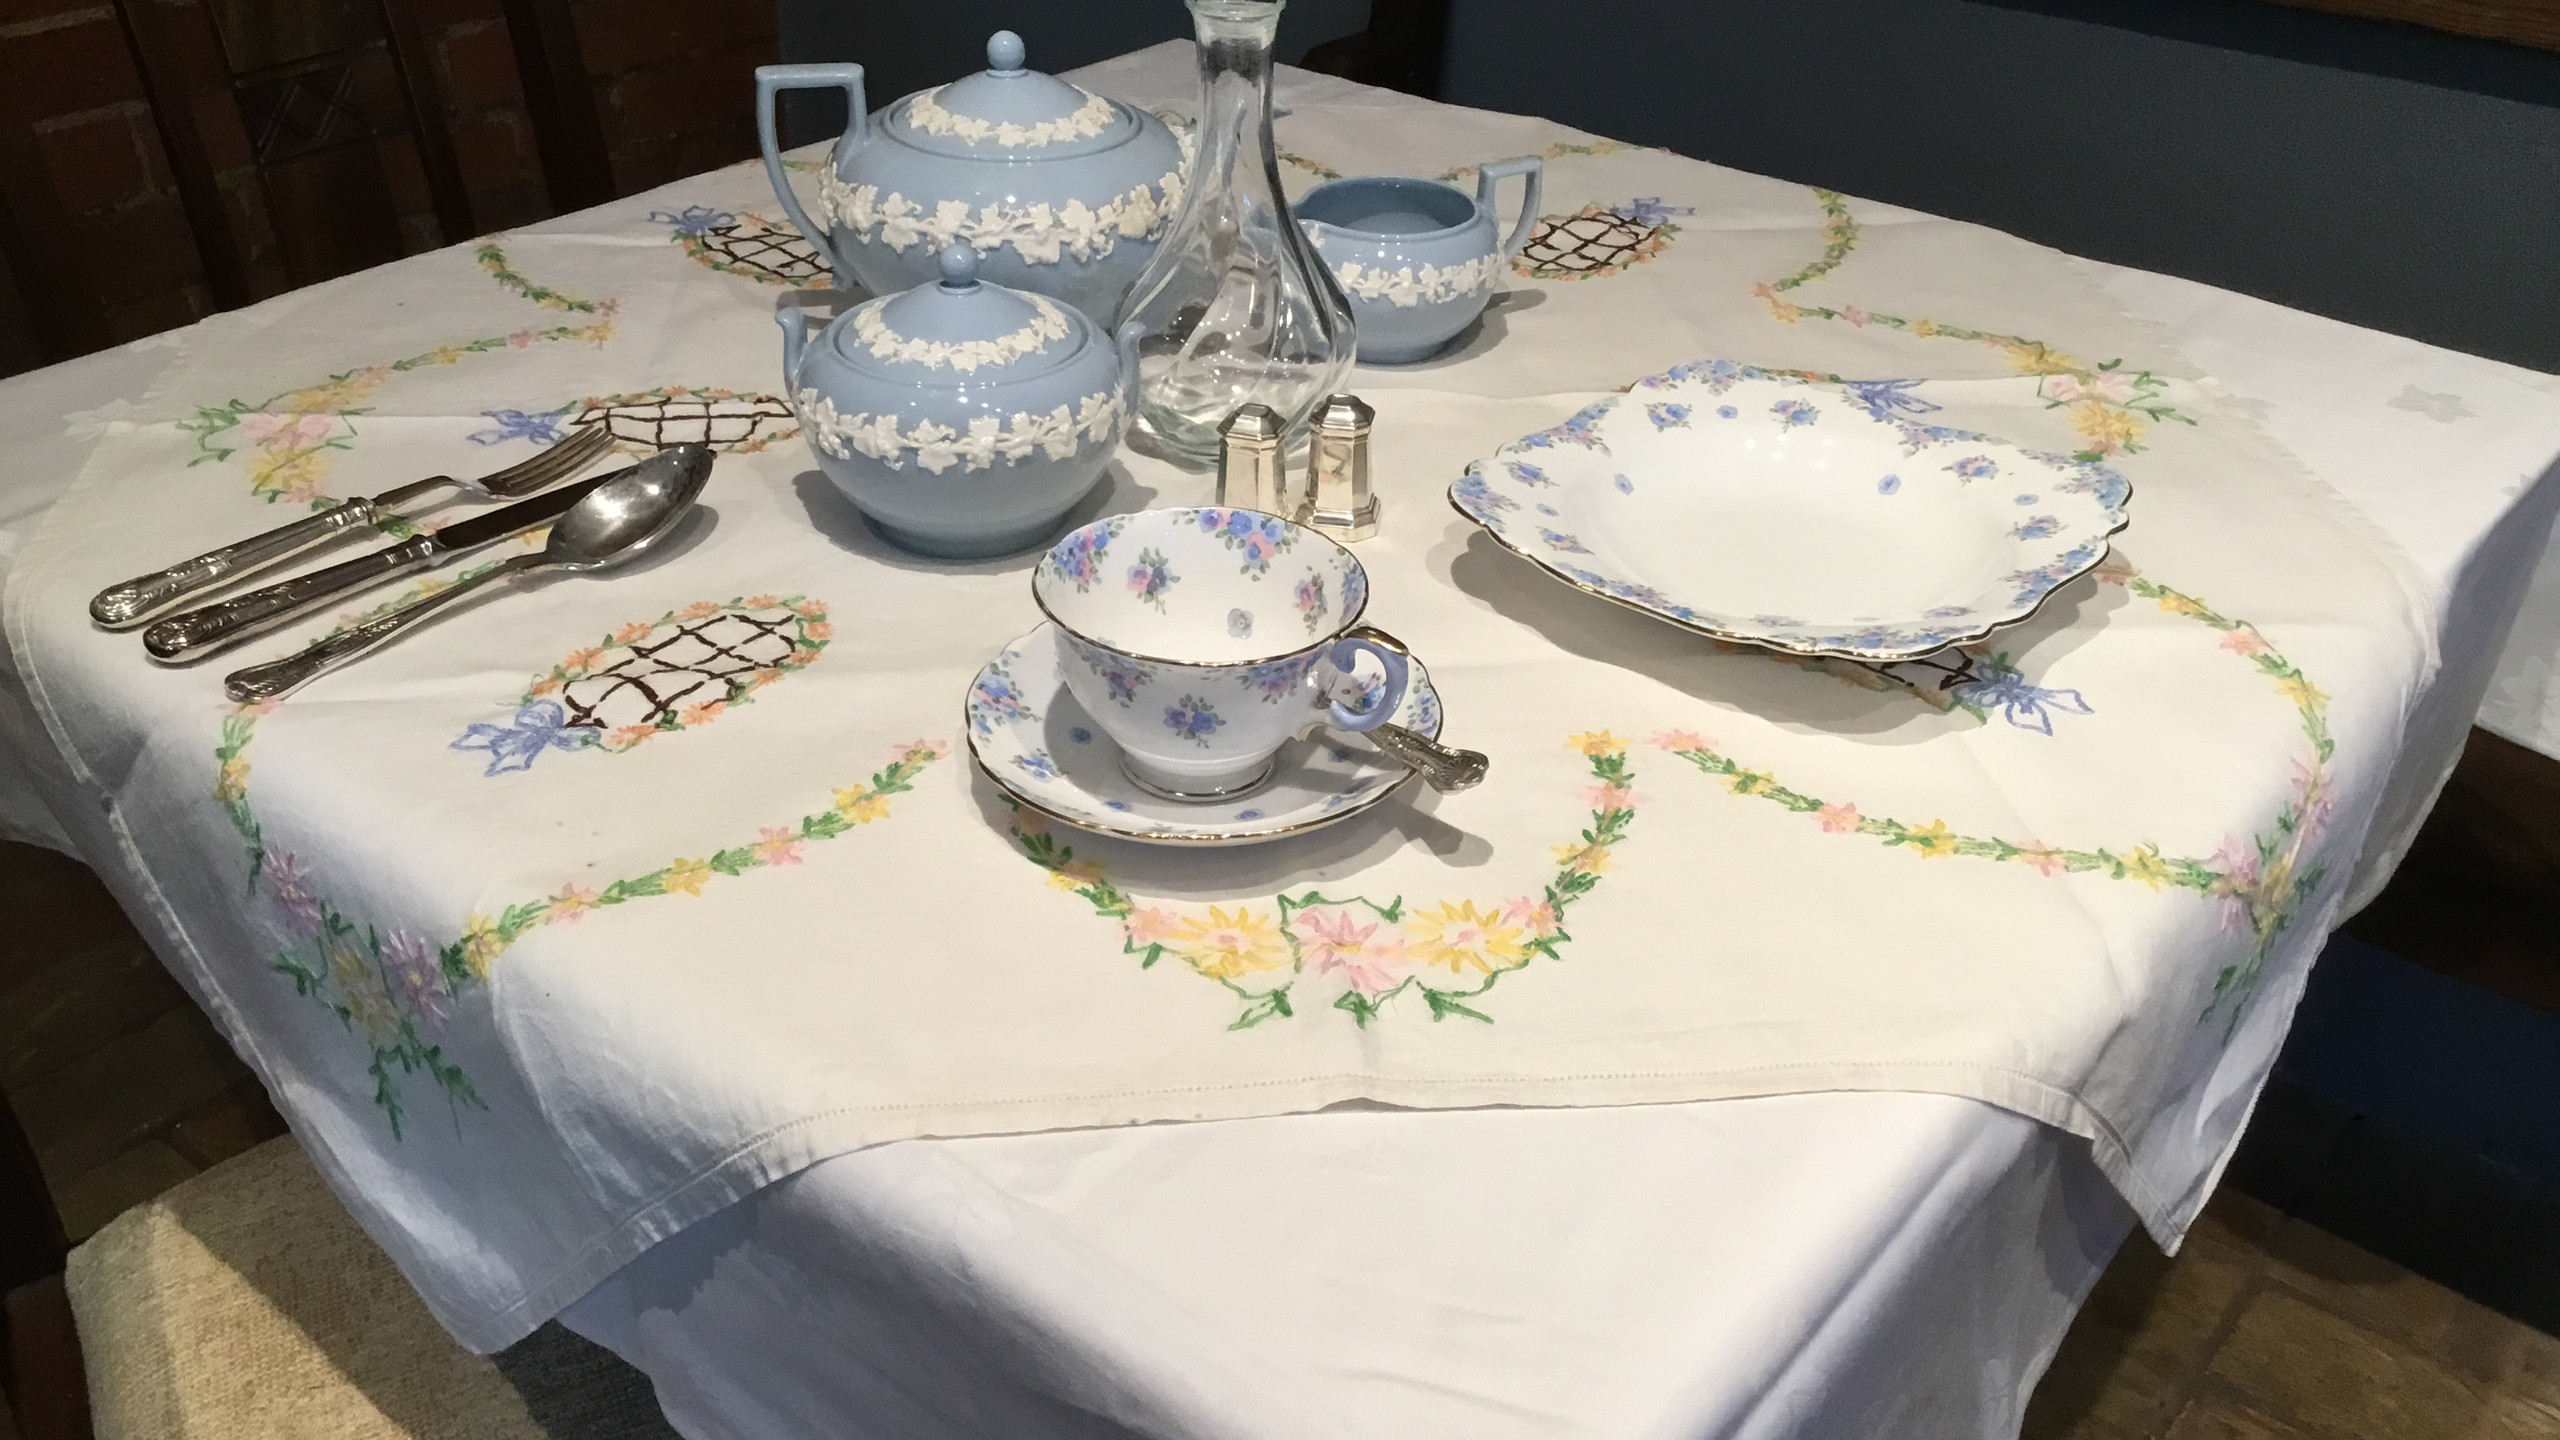 Forties-style afternoon tea